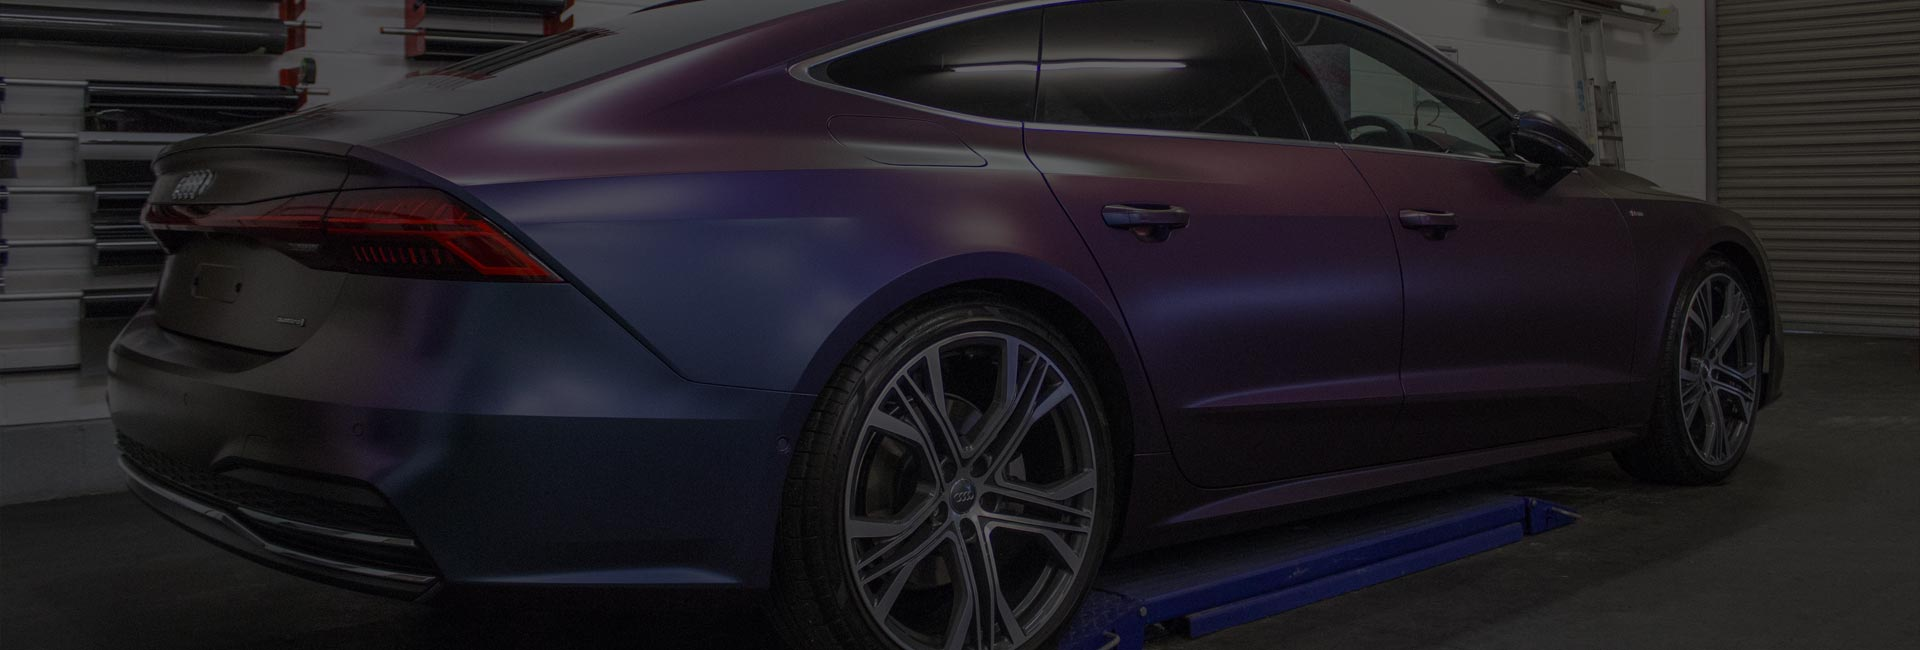 Audi A7 Full Vinyl Wrap Colour Change Gallery - Fitting Progress Expression Automotive